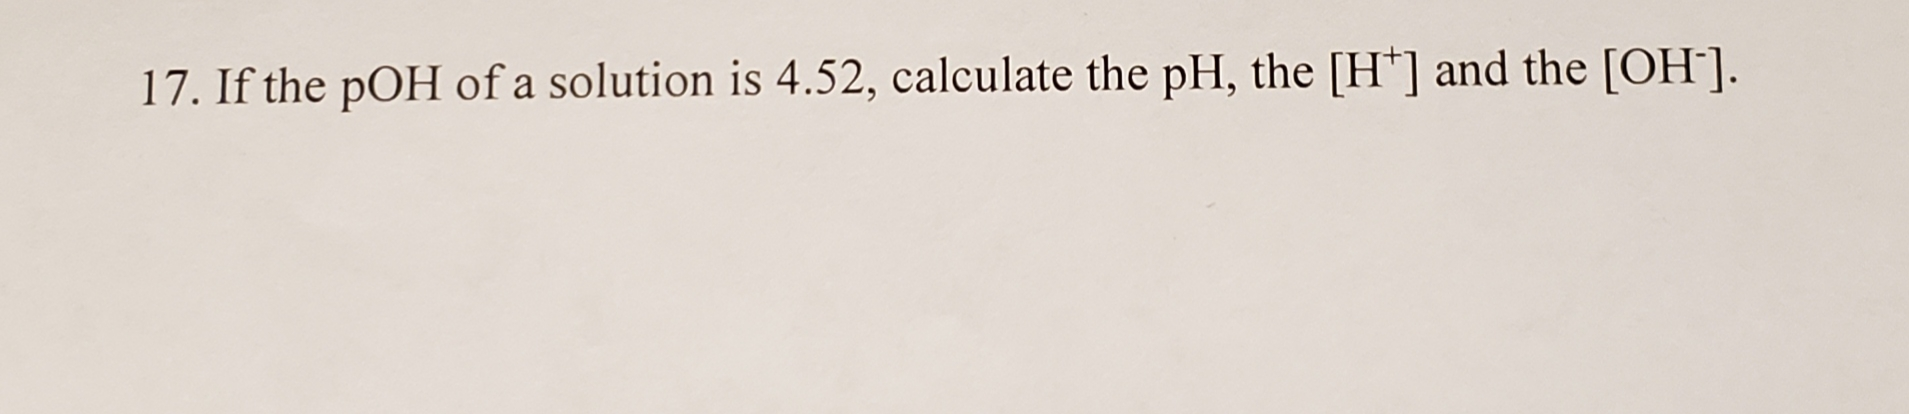 17. If the pOH of a solution is 4.52, calculate the pH, the [H'] and the [OH].